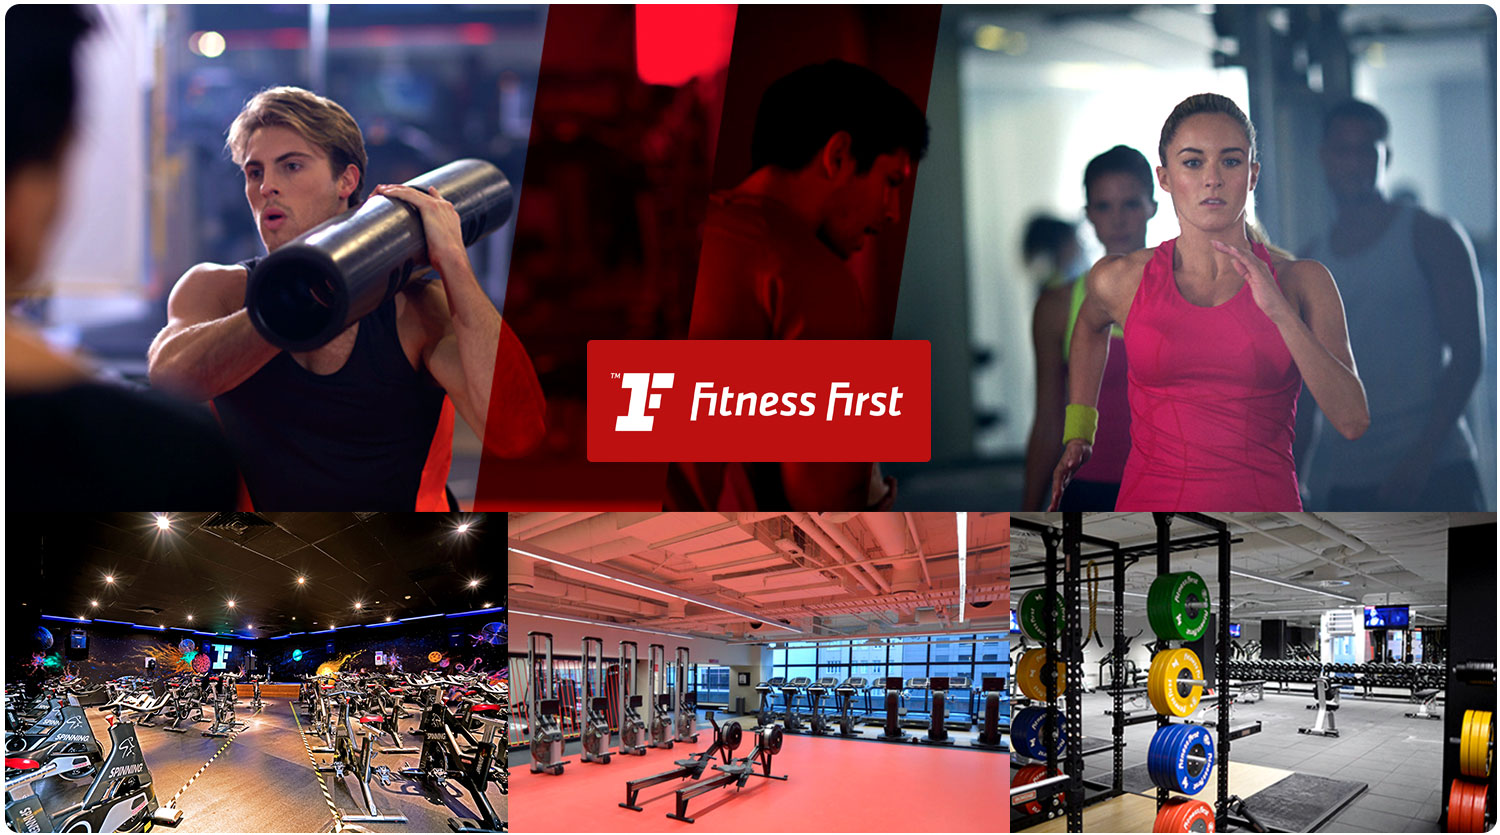 Start your Fitness Journey with Fitness First with only $14.95 for 14 days at Fitness First Carlingford NSW. Experience our first class gym and freestyle classes inc. Zumba, Pilates, Yoga, Les Mills and more. Take the first step with Fitness First Carlingford NSW.